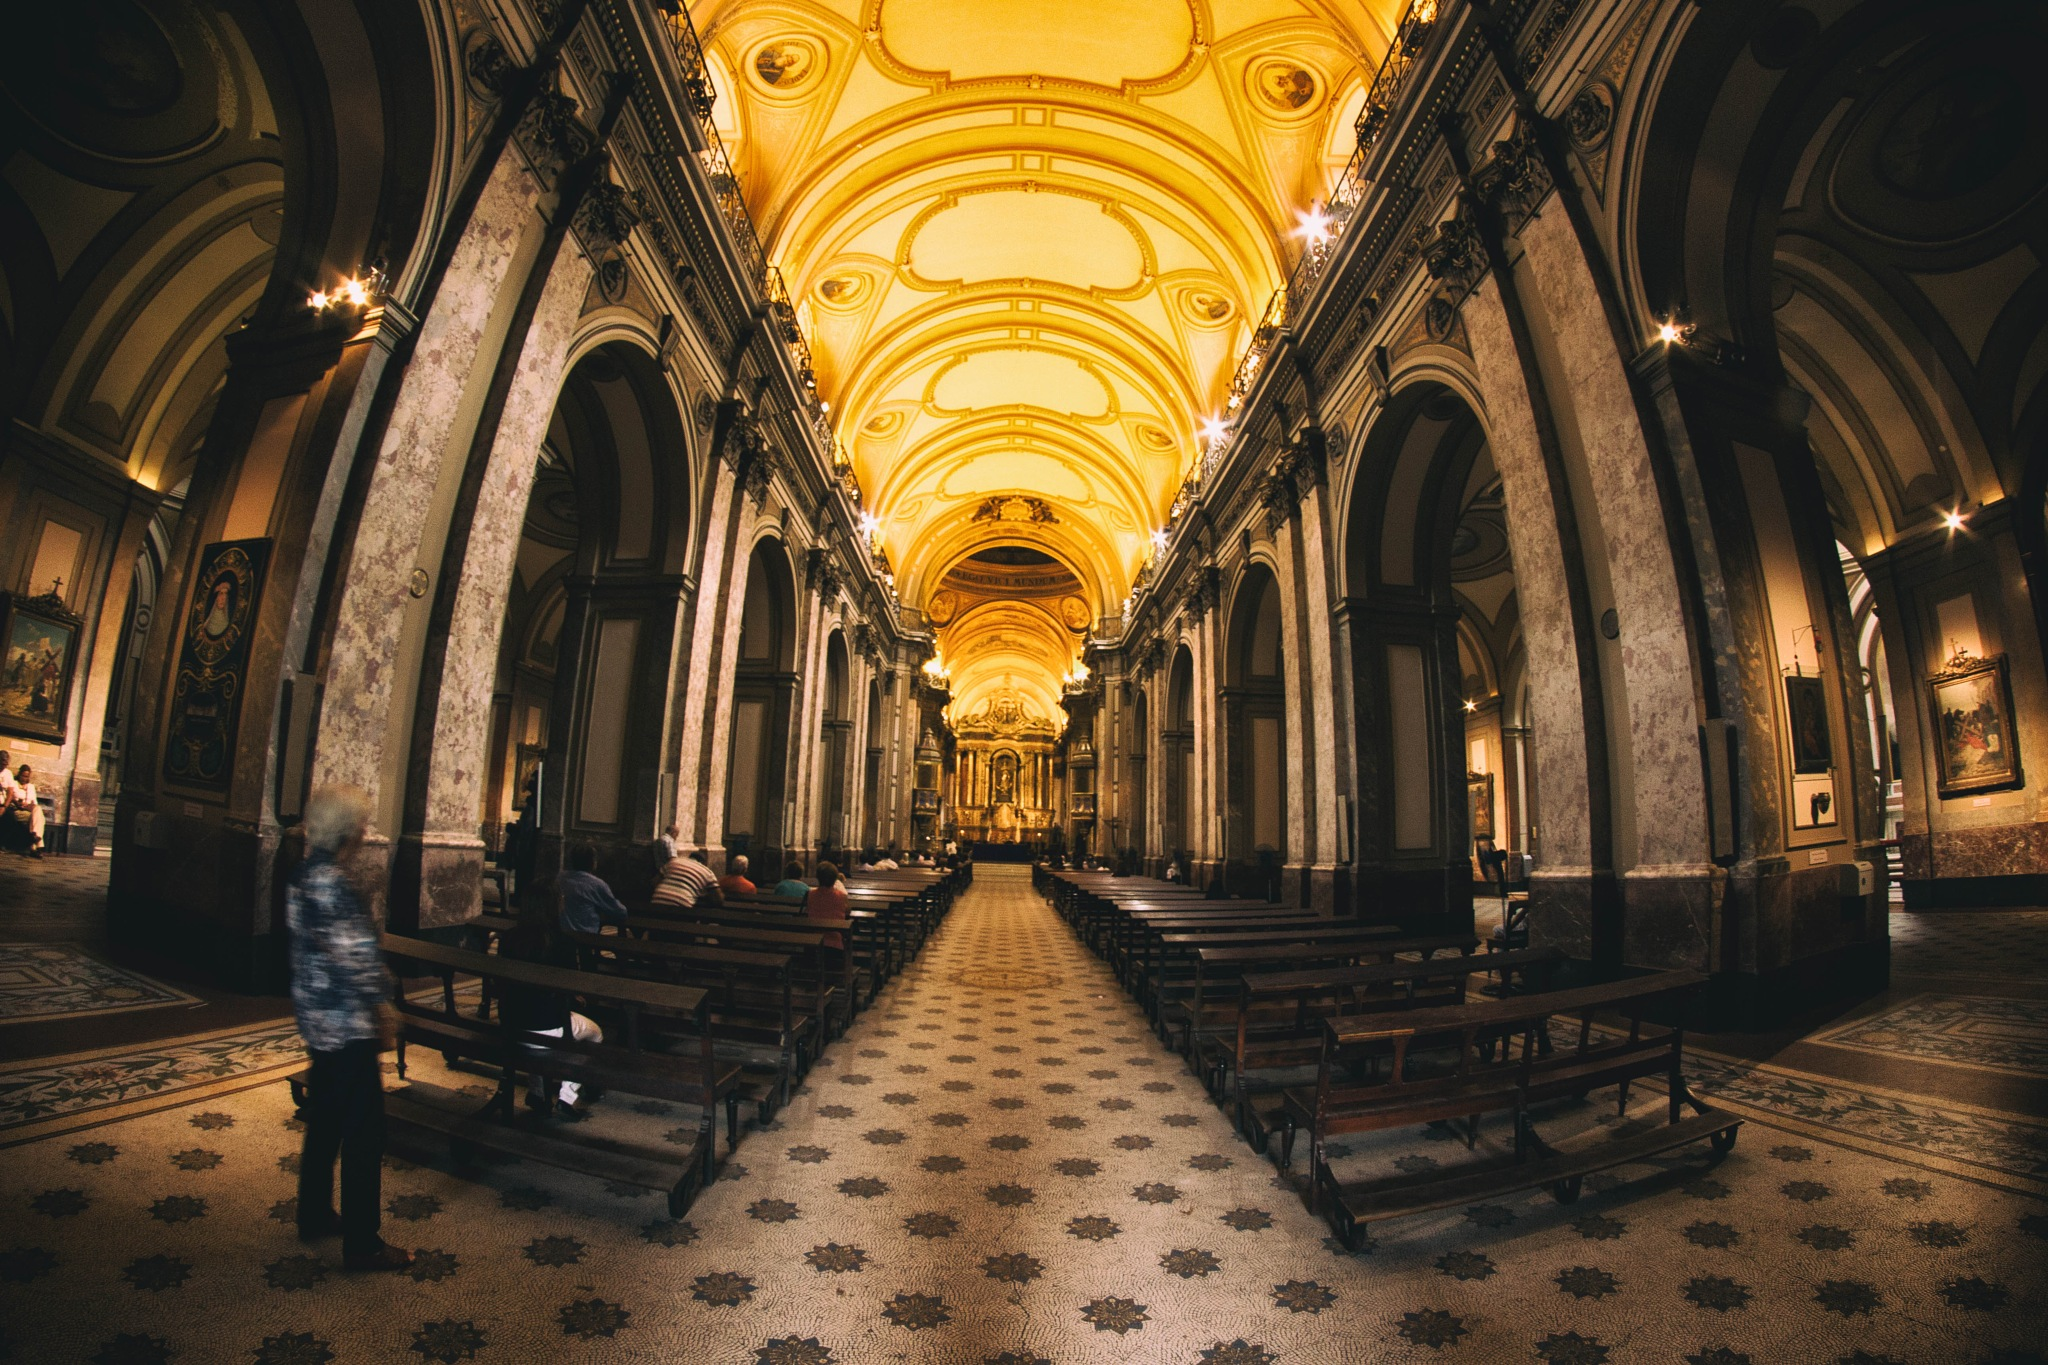 Interior catedral de Buenos Aires by nent